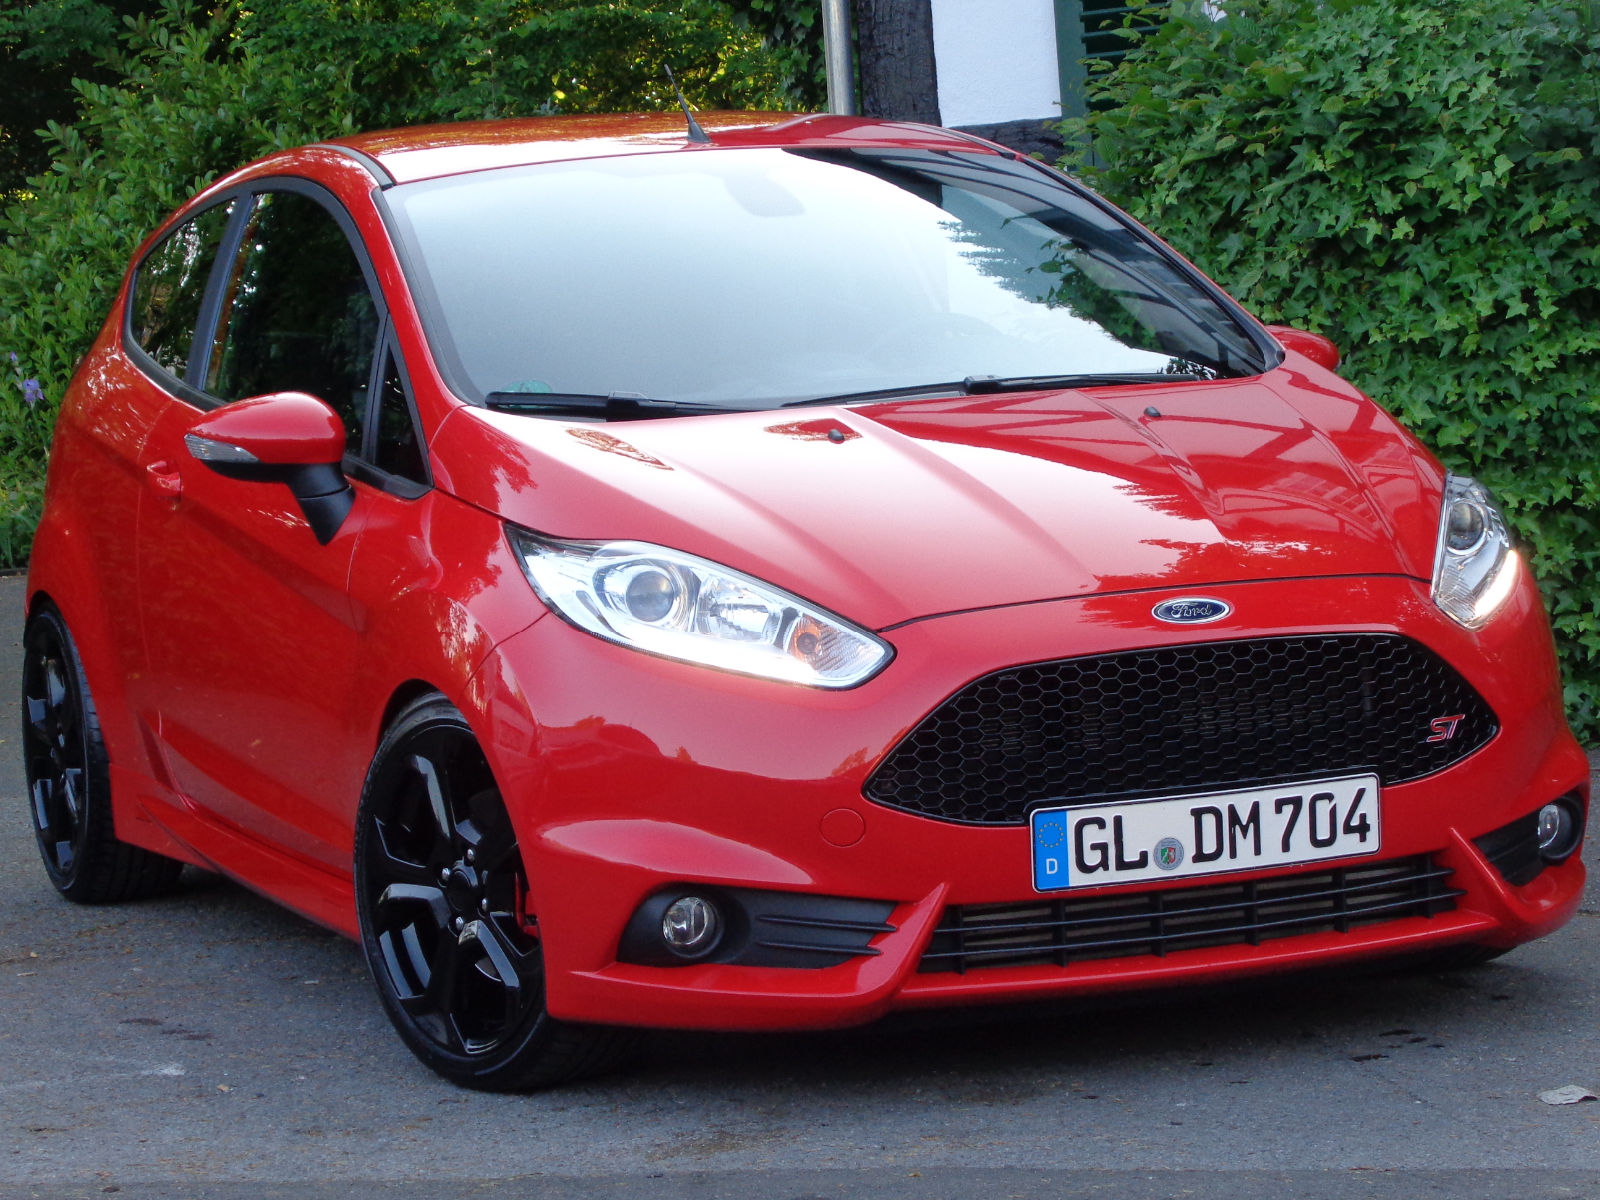 FORD FIESTA (01/2014) - RED - lieu: